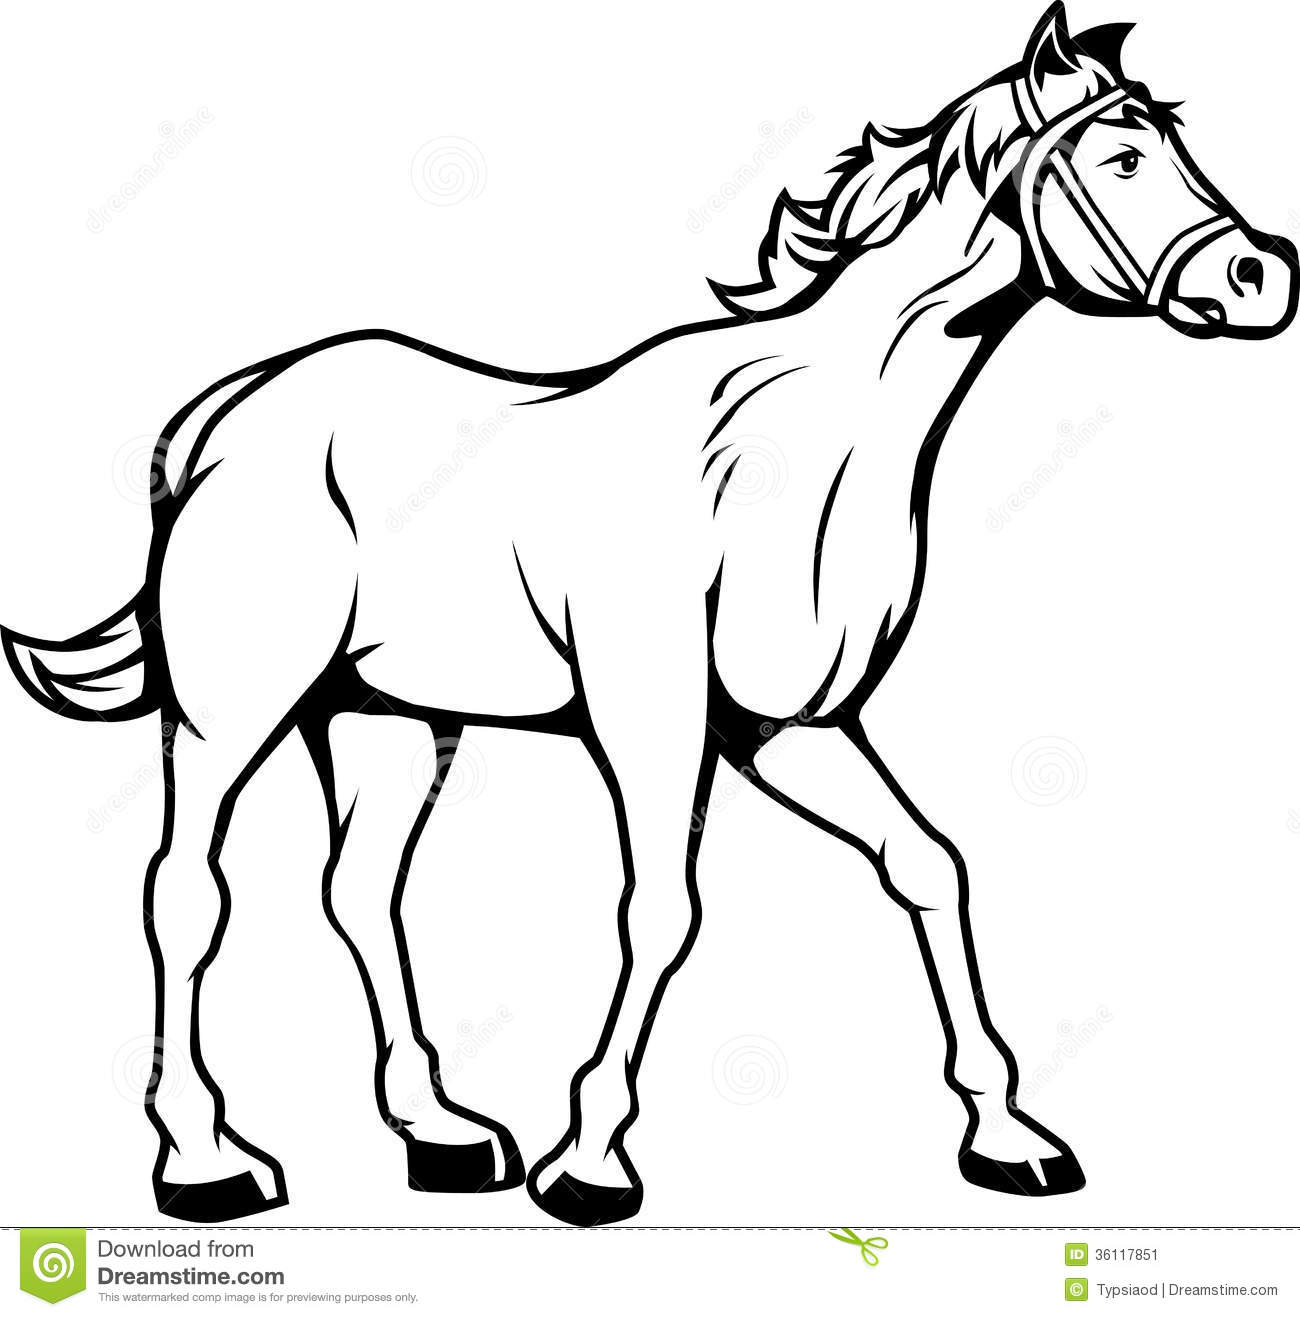 Swirly horse black and white clipart png freeuse download Collection of Interior clipart | Free download best Interior ... png freeuse download